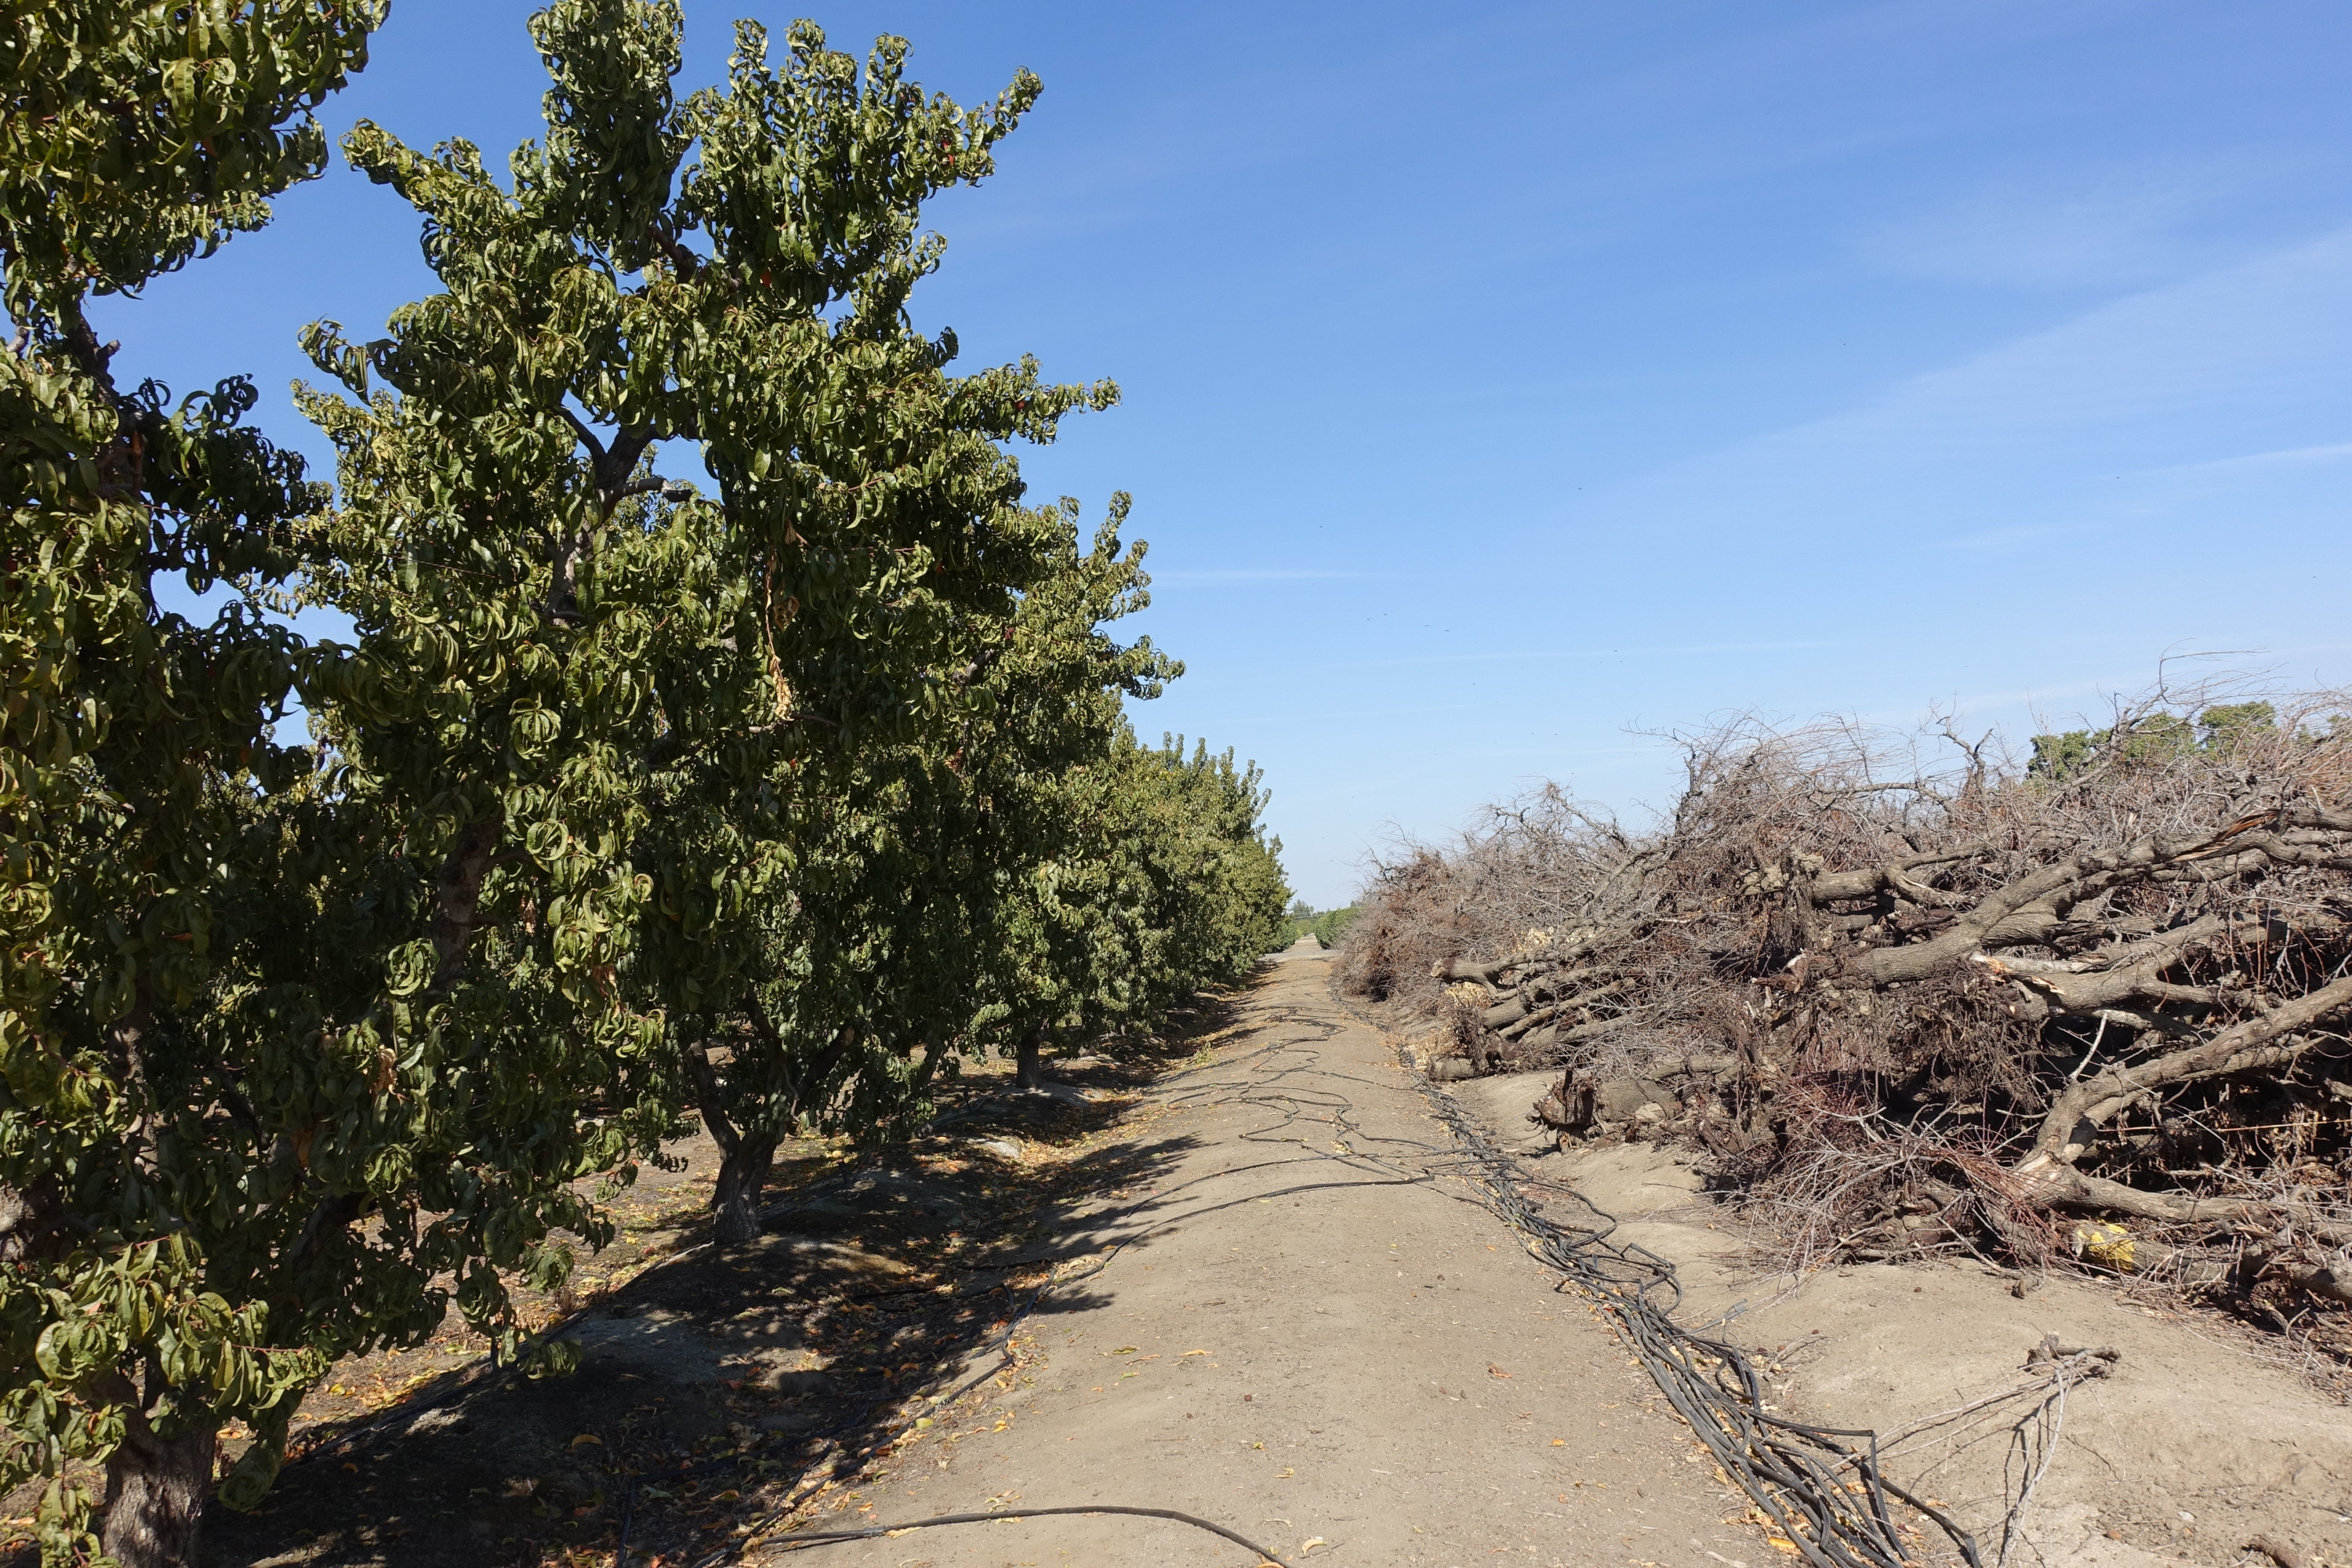 Standing orchard trees (left) next to uprooted orchard trees (right)